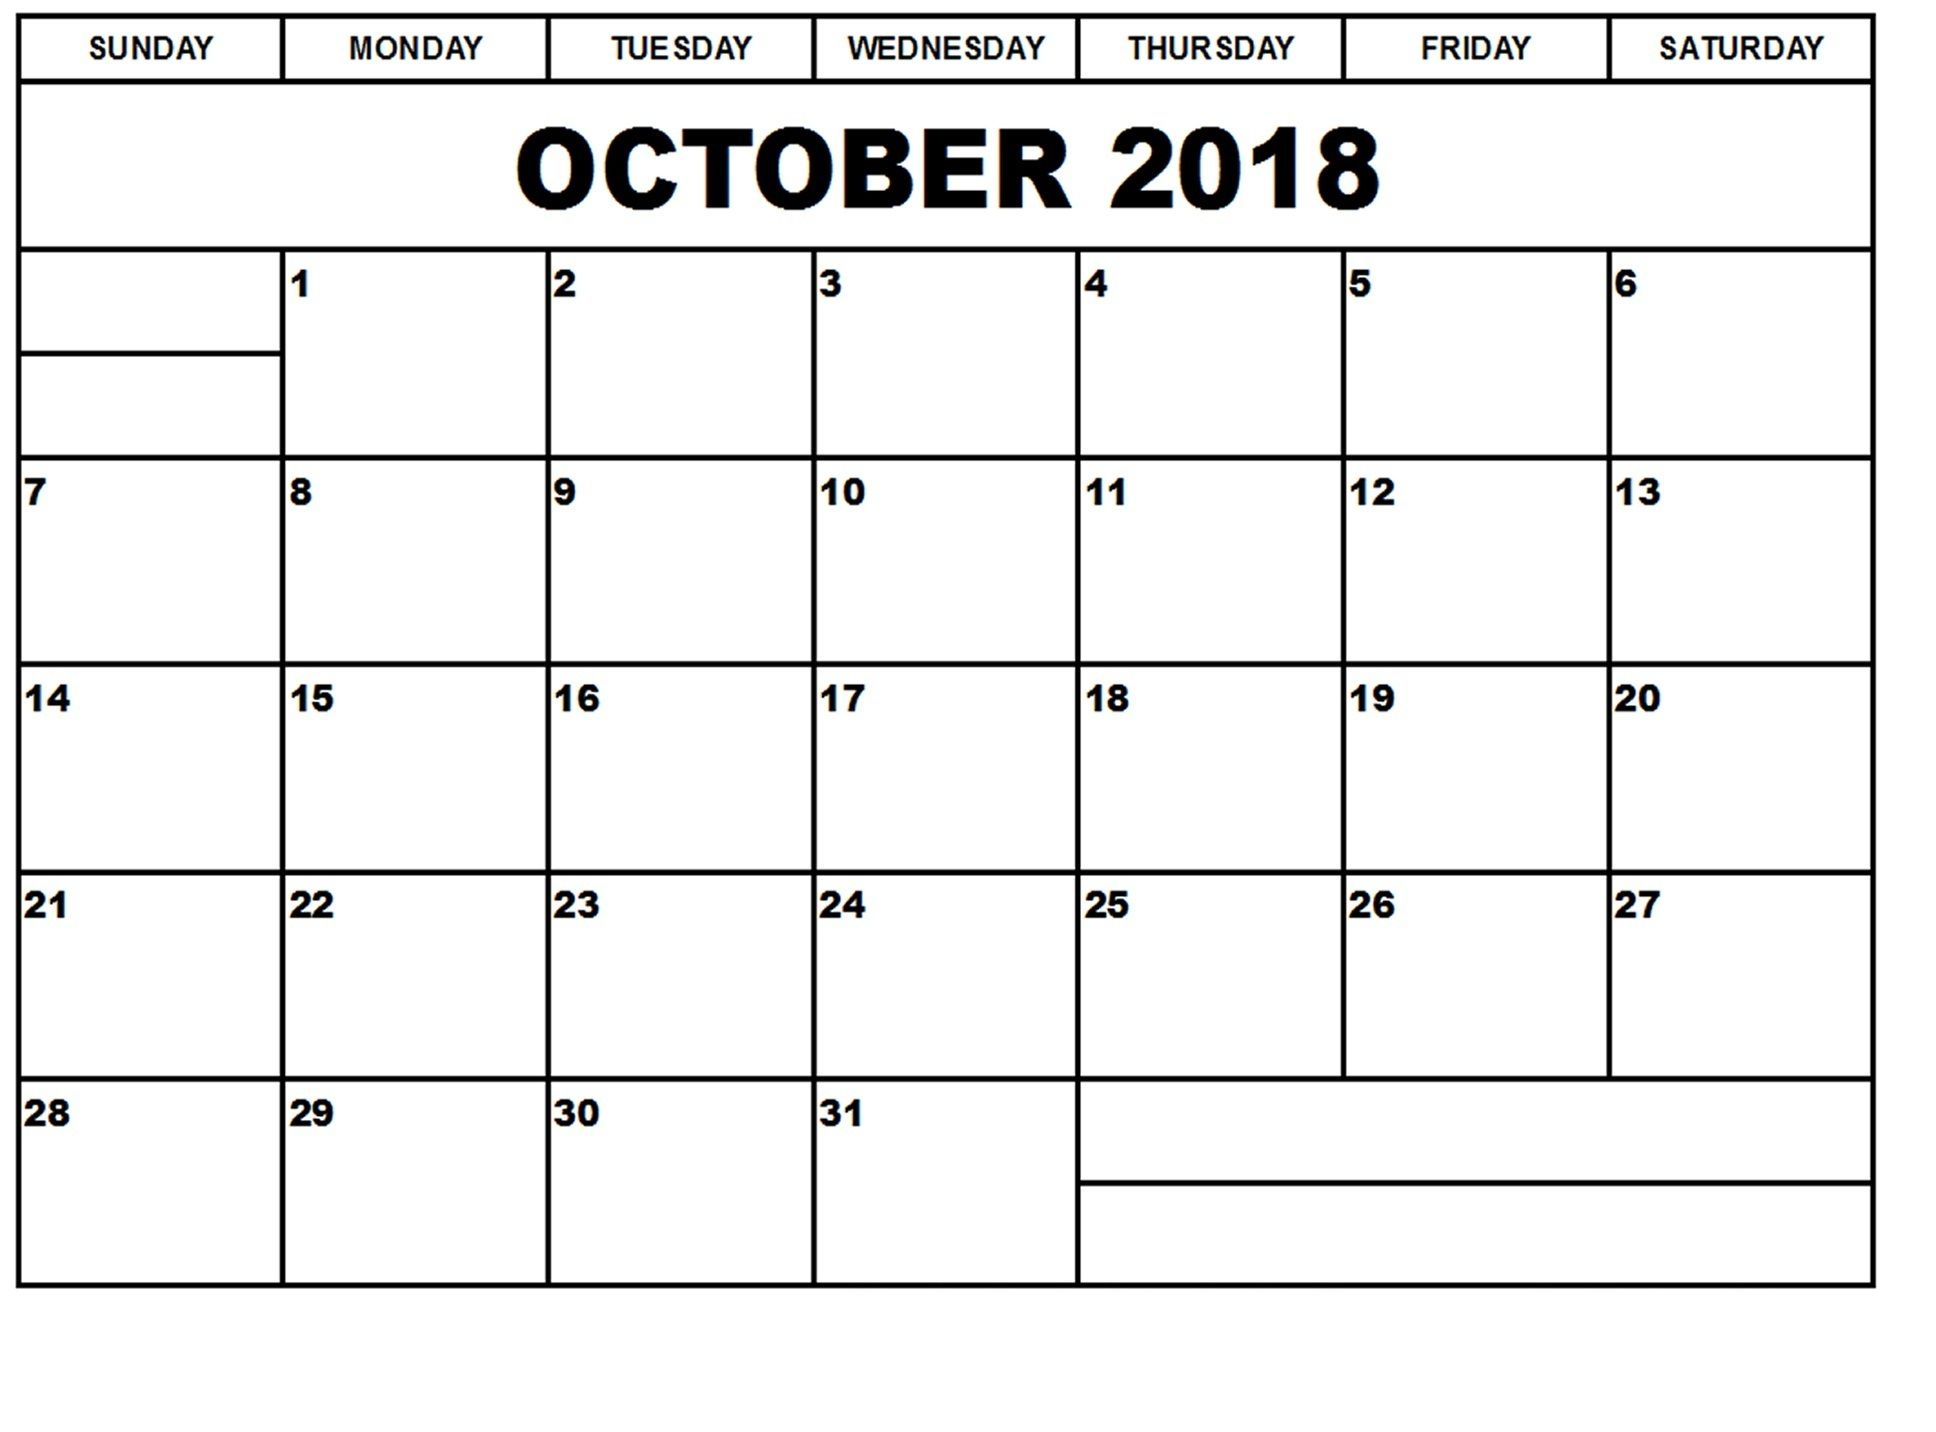 Free Printable Calendar October 2018 Cute With Notes